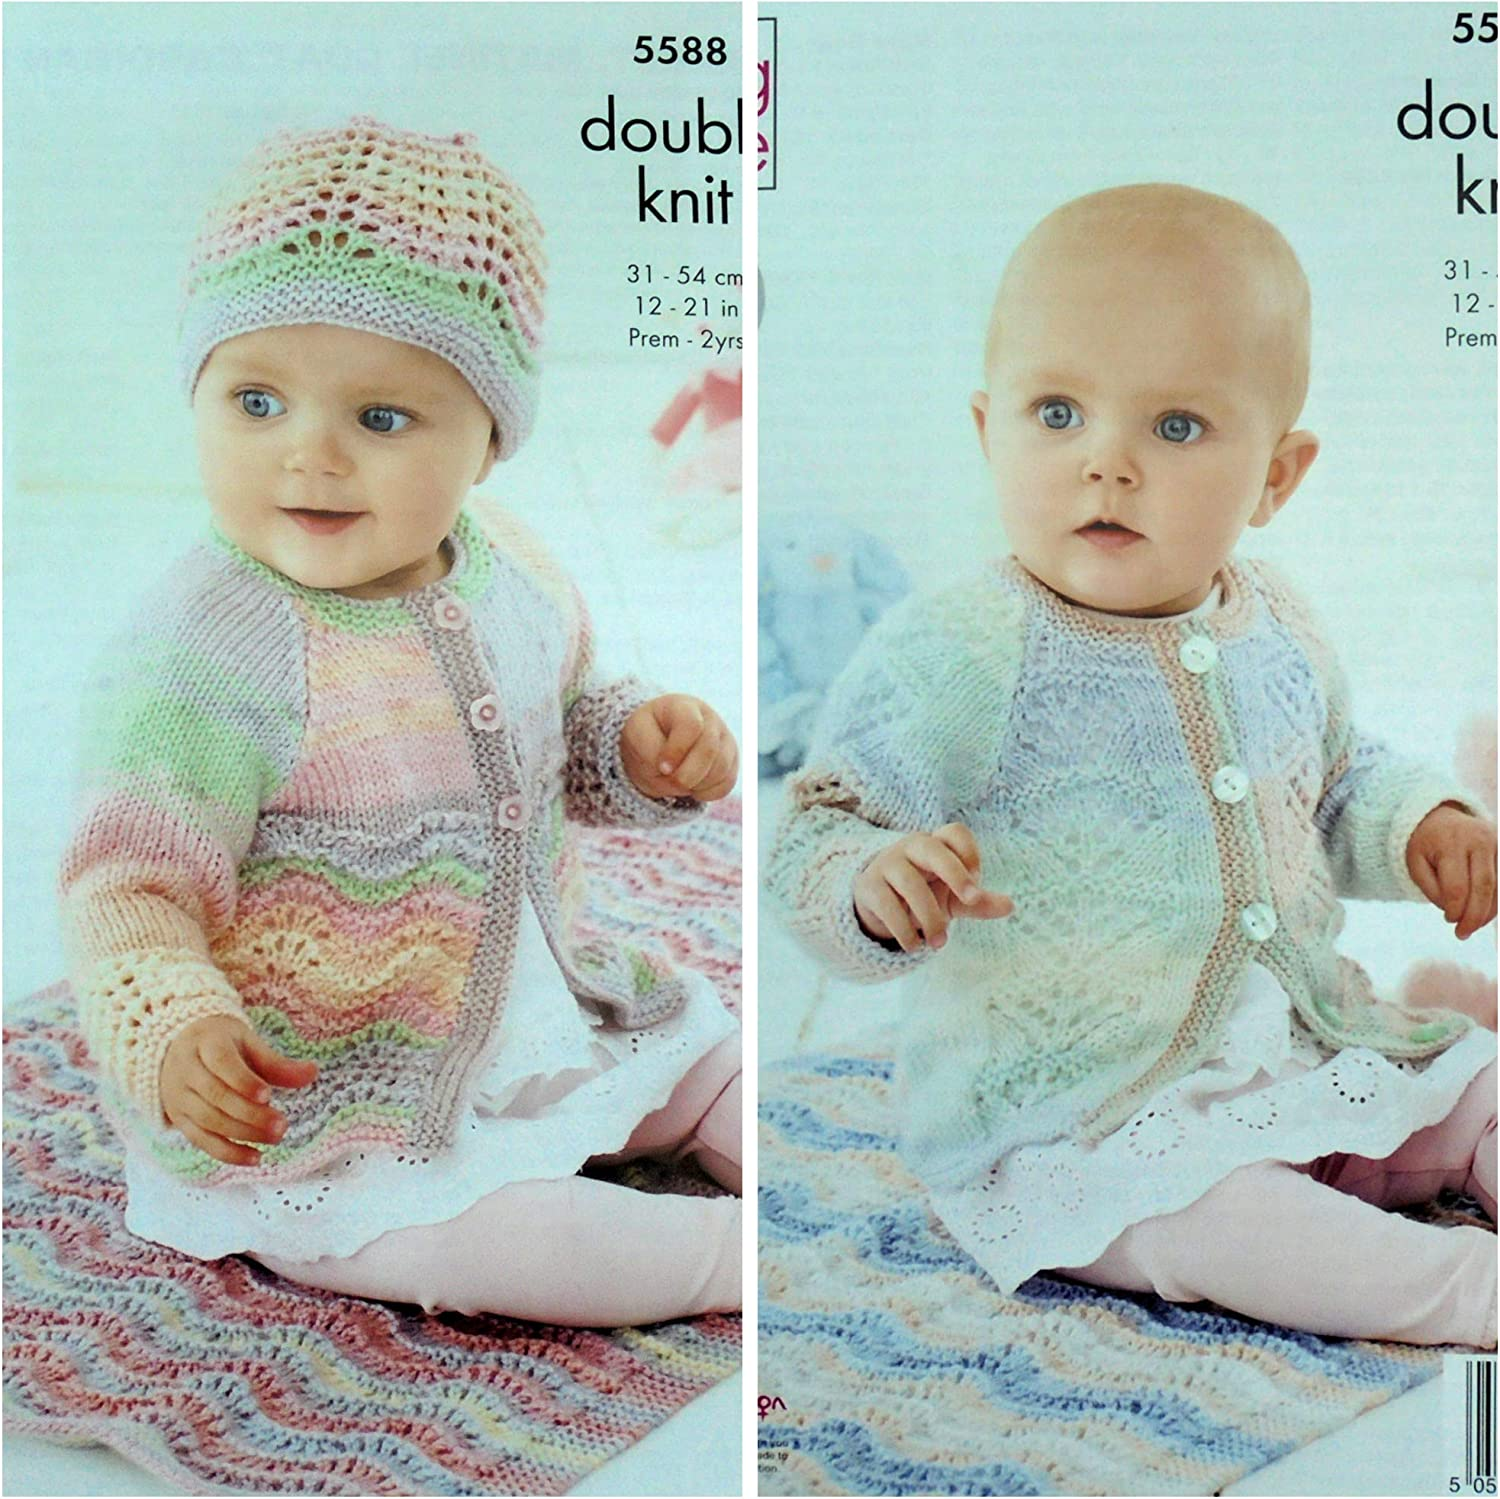 King Cole Baby DK Knitting Pattern Lace Matinee Coat Cardigan Blanket Hat 5588